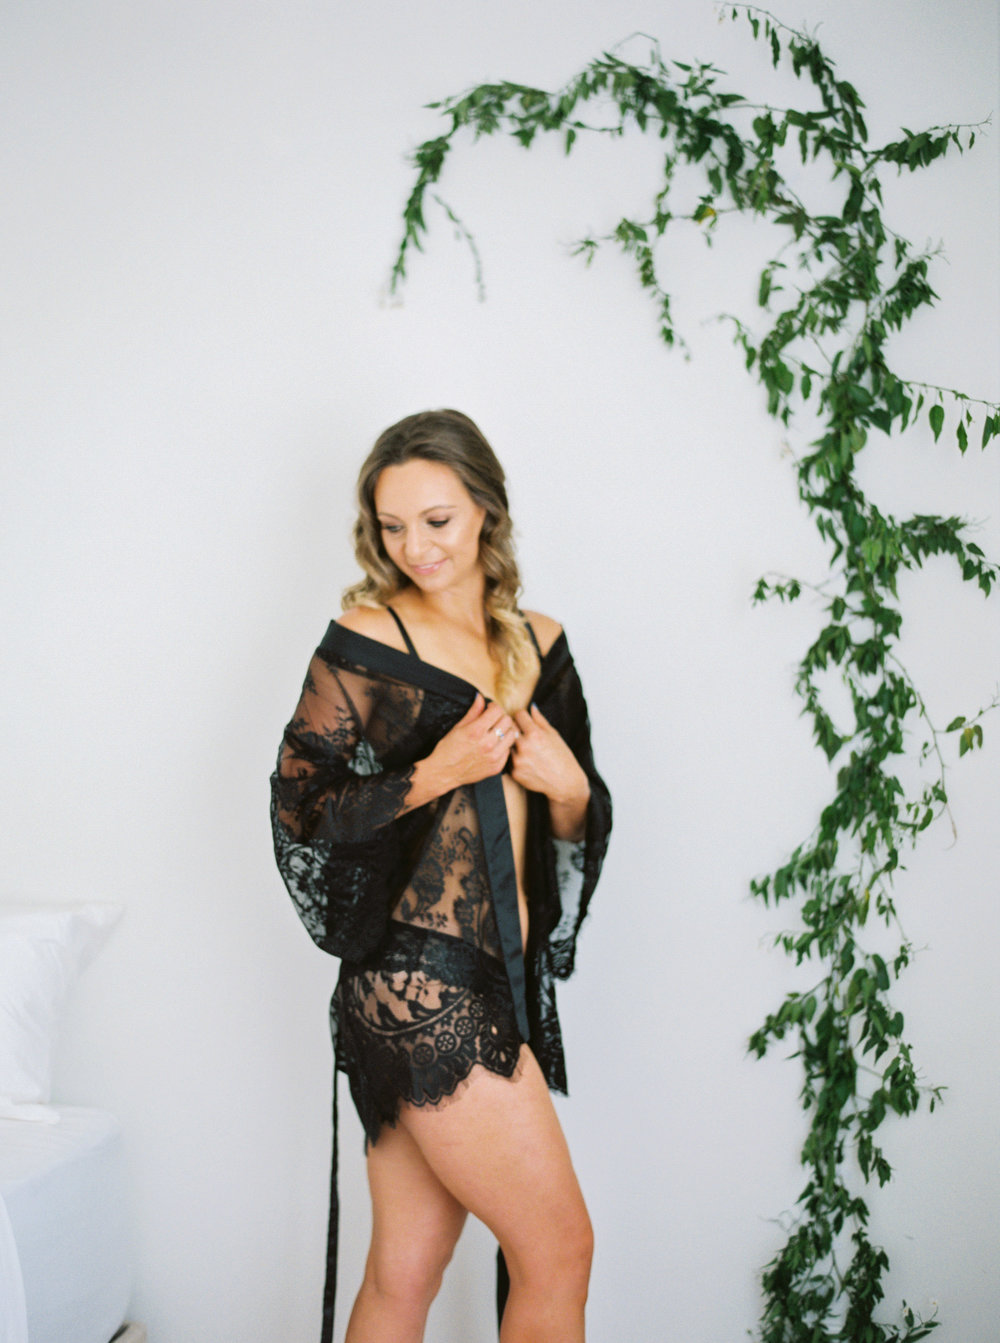 00009- Fine Art Film NSW Dubbo Mudgee Orange Bridal Boudoir Wedding Photographer Sheri McMahon in black lace lingere_.jpg